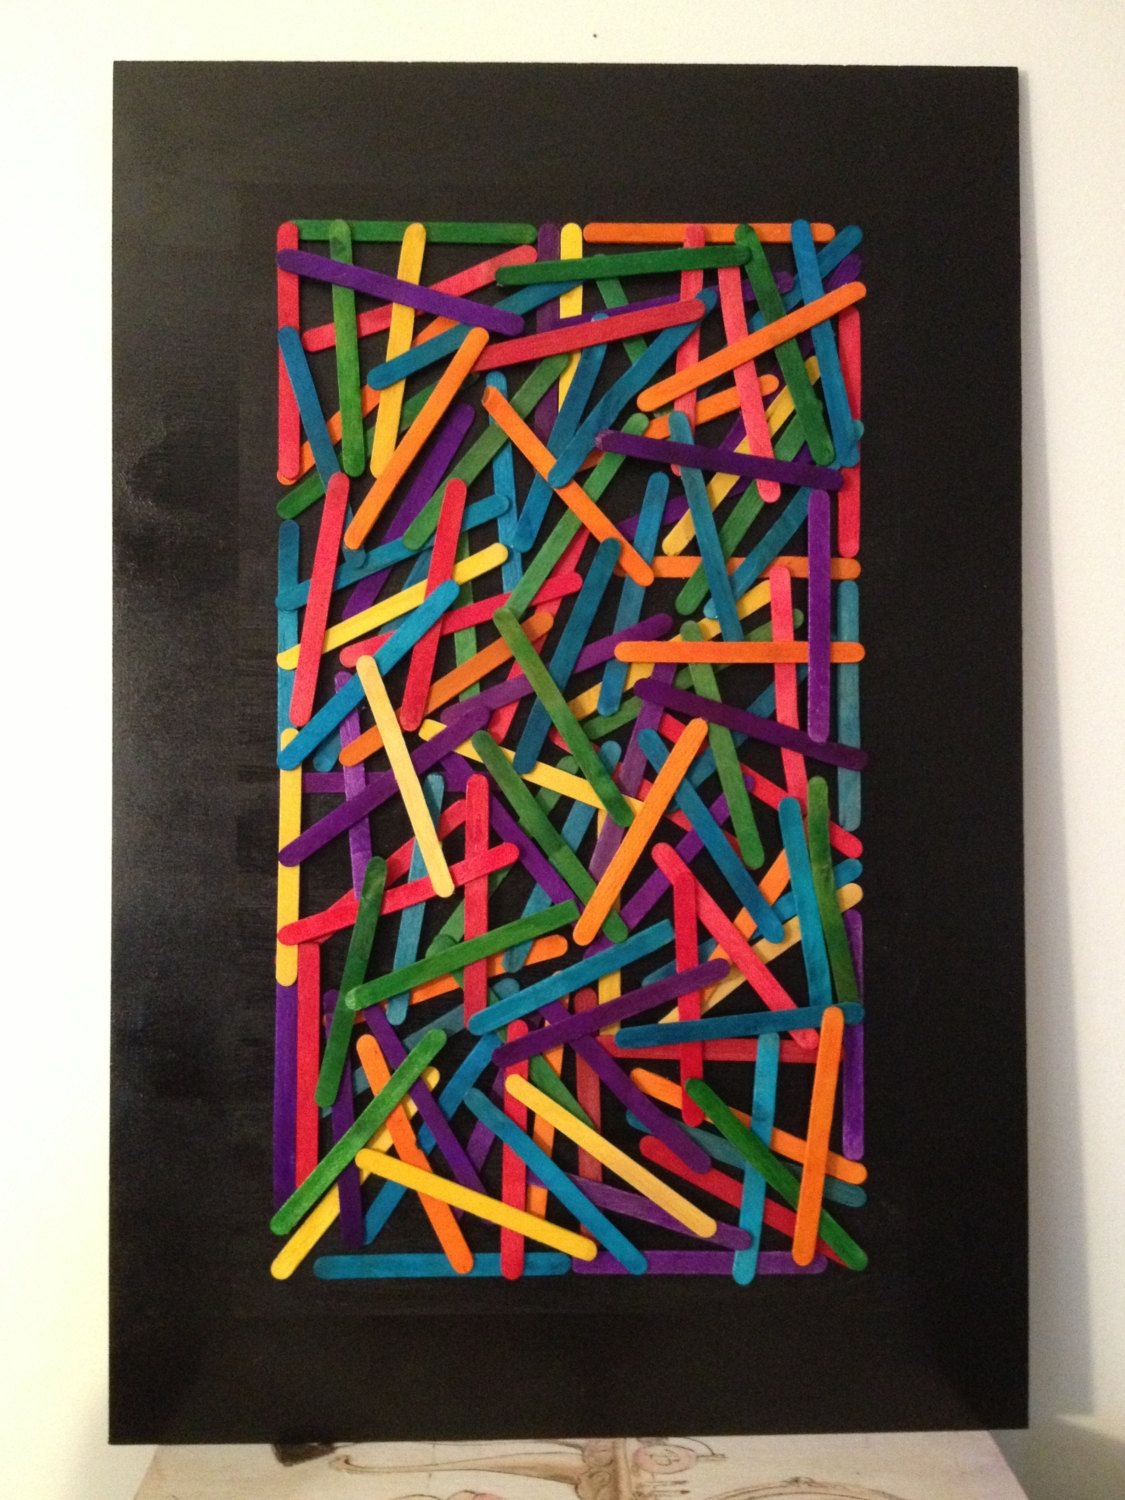 Arts and crafts sticks - Colorful Popsicle Stick Wall Art